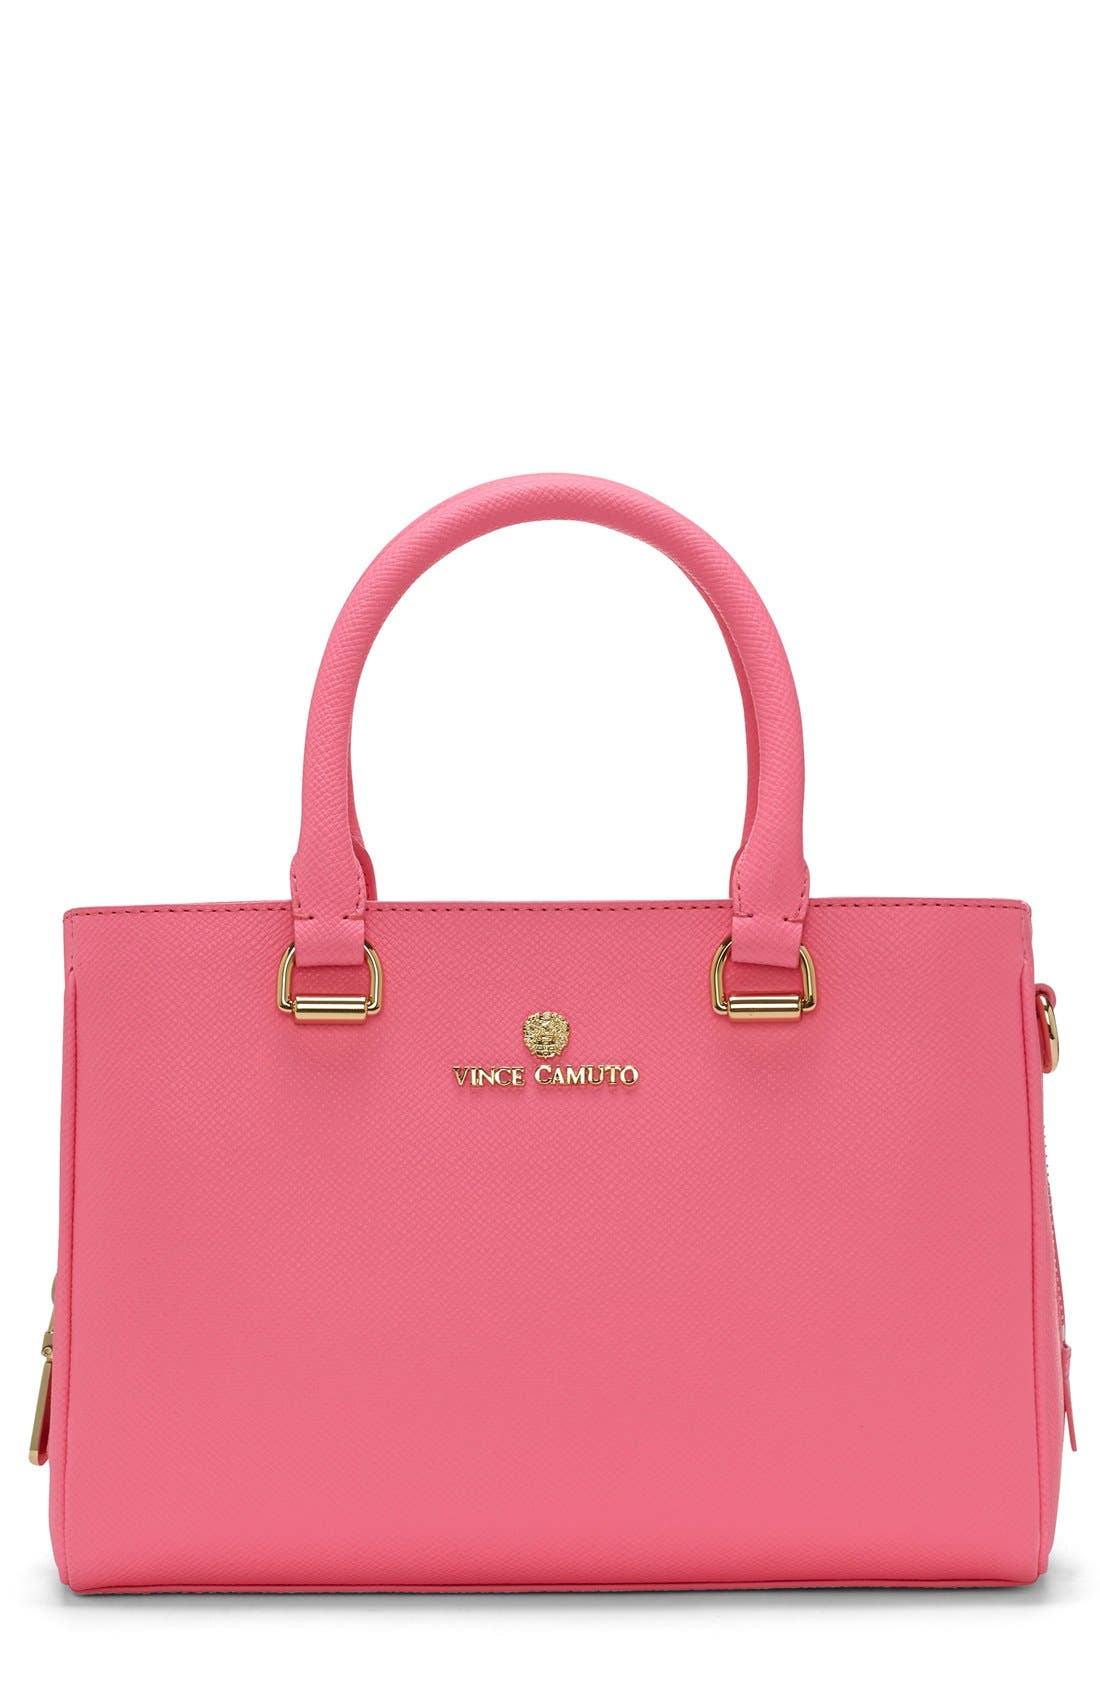 Alternate Image 1 Selected - Vince Camuto 'Small Thea' Leather Satchel